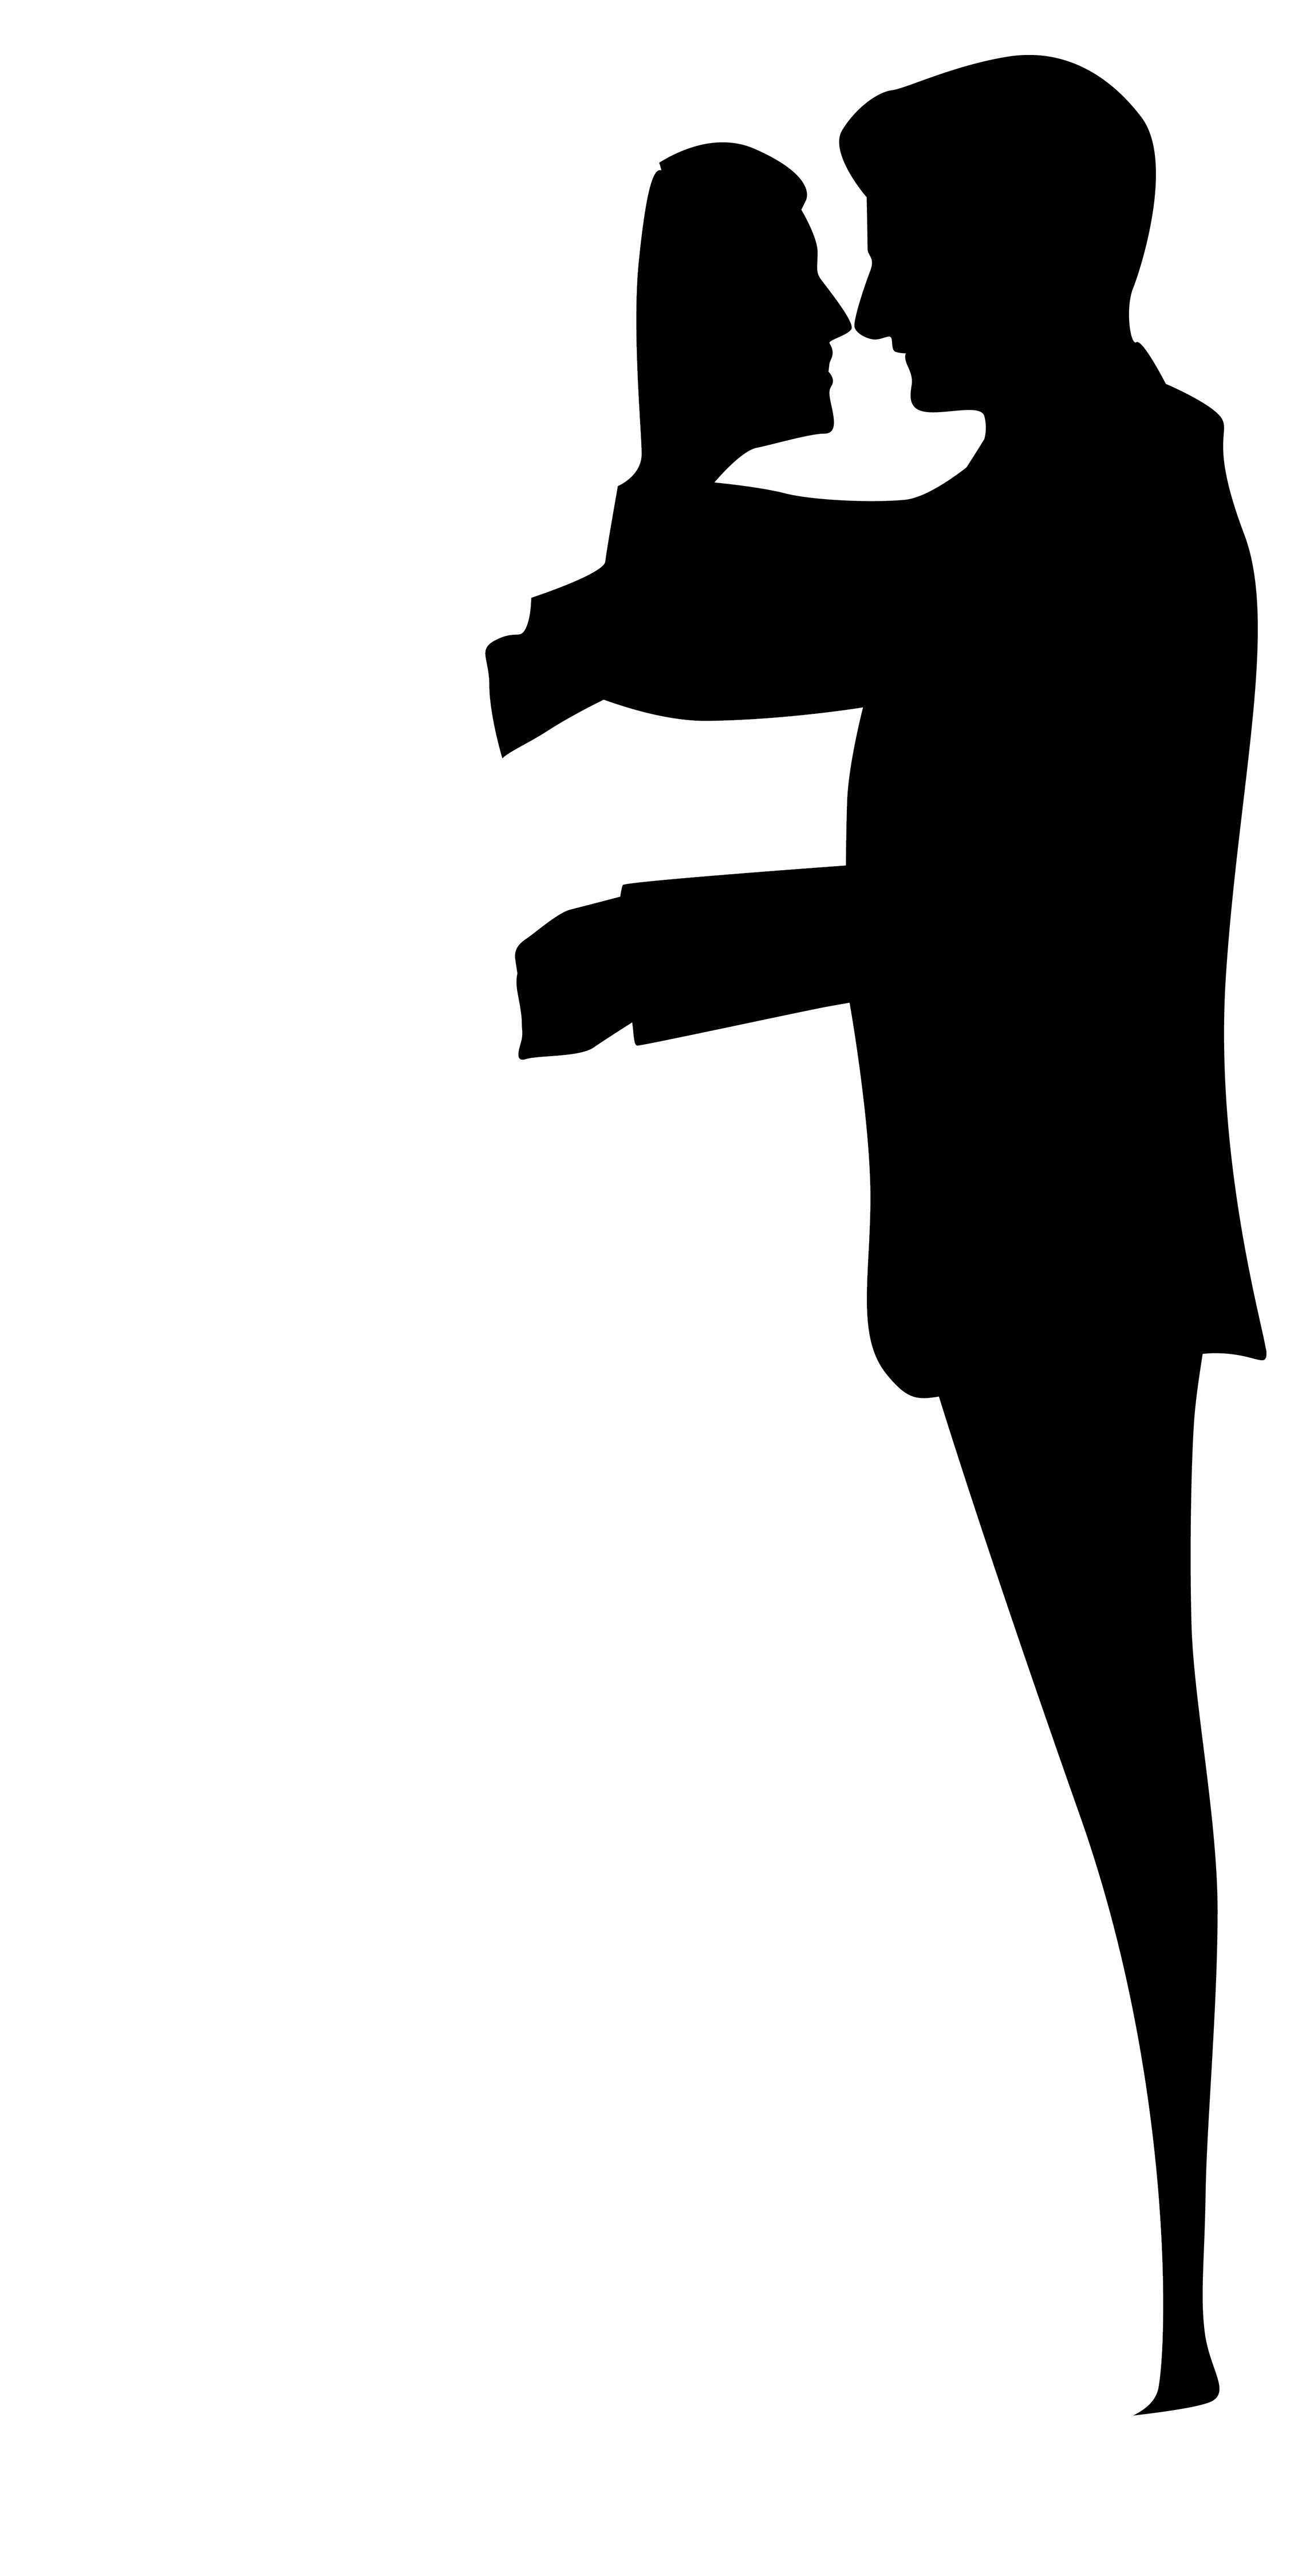 Bridesmaid Clipart Silhouette at GetDrawings.com | Free for personal ... image royalty free